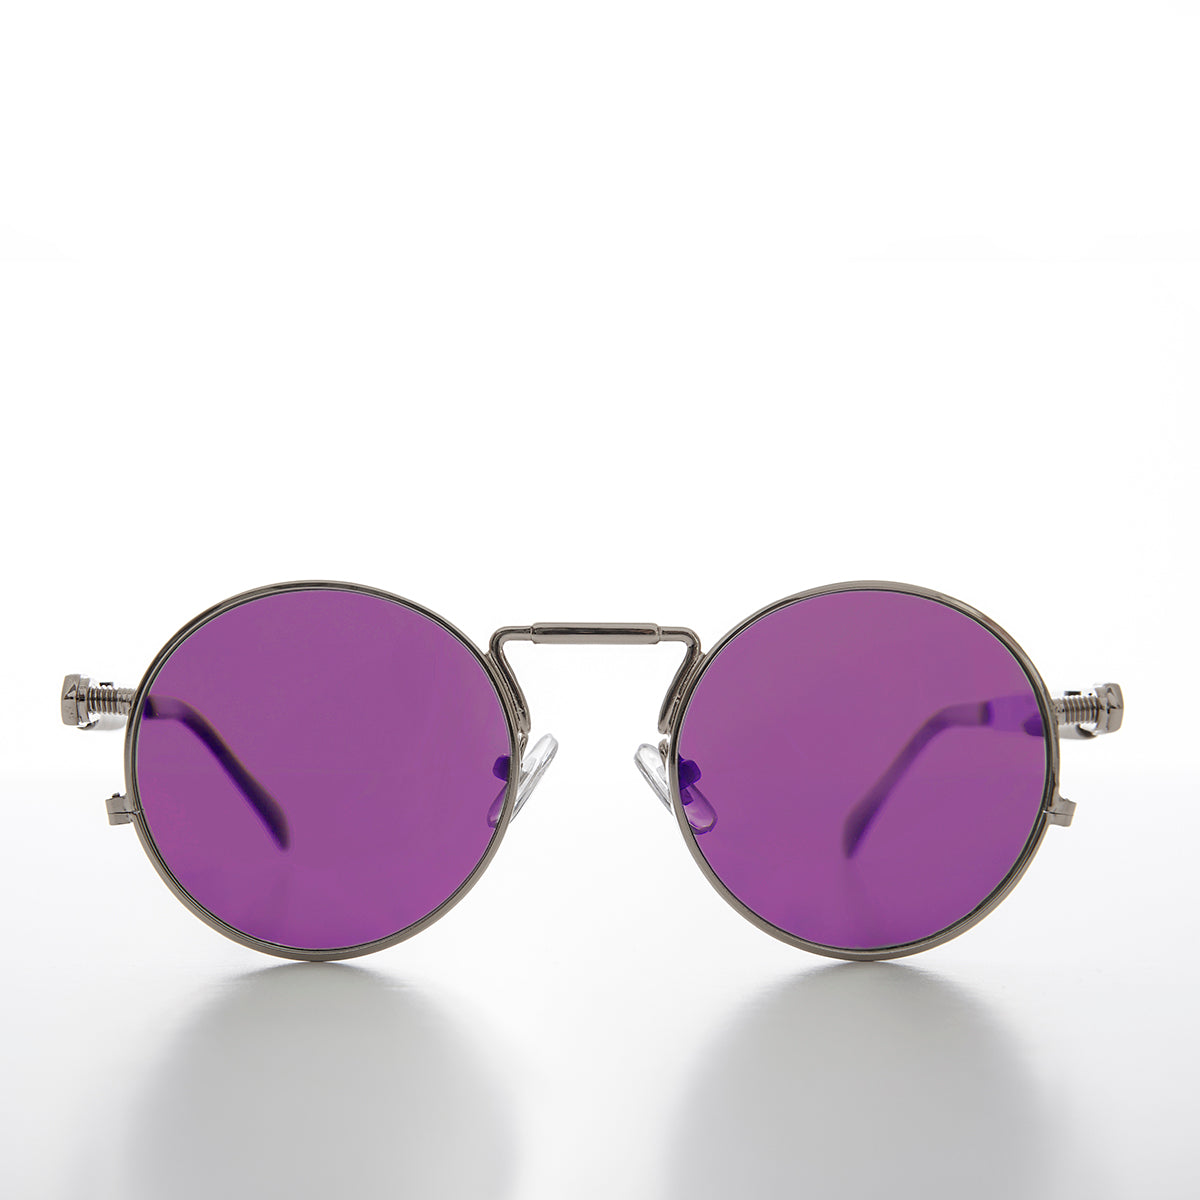 Round Silver Goth Steampunk Sunglass with Colored Lenses